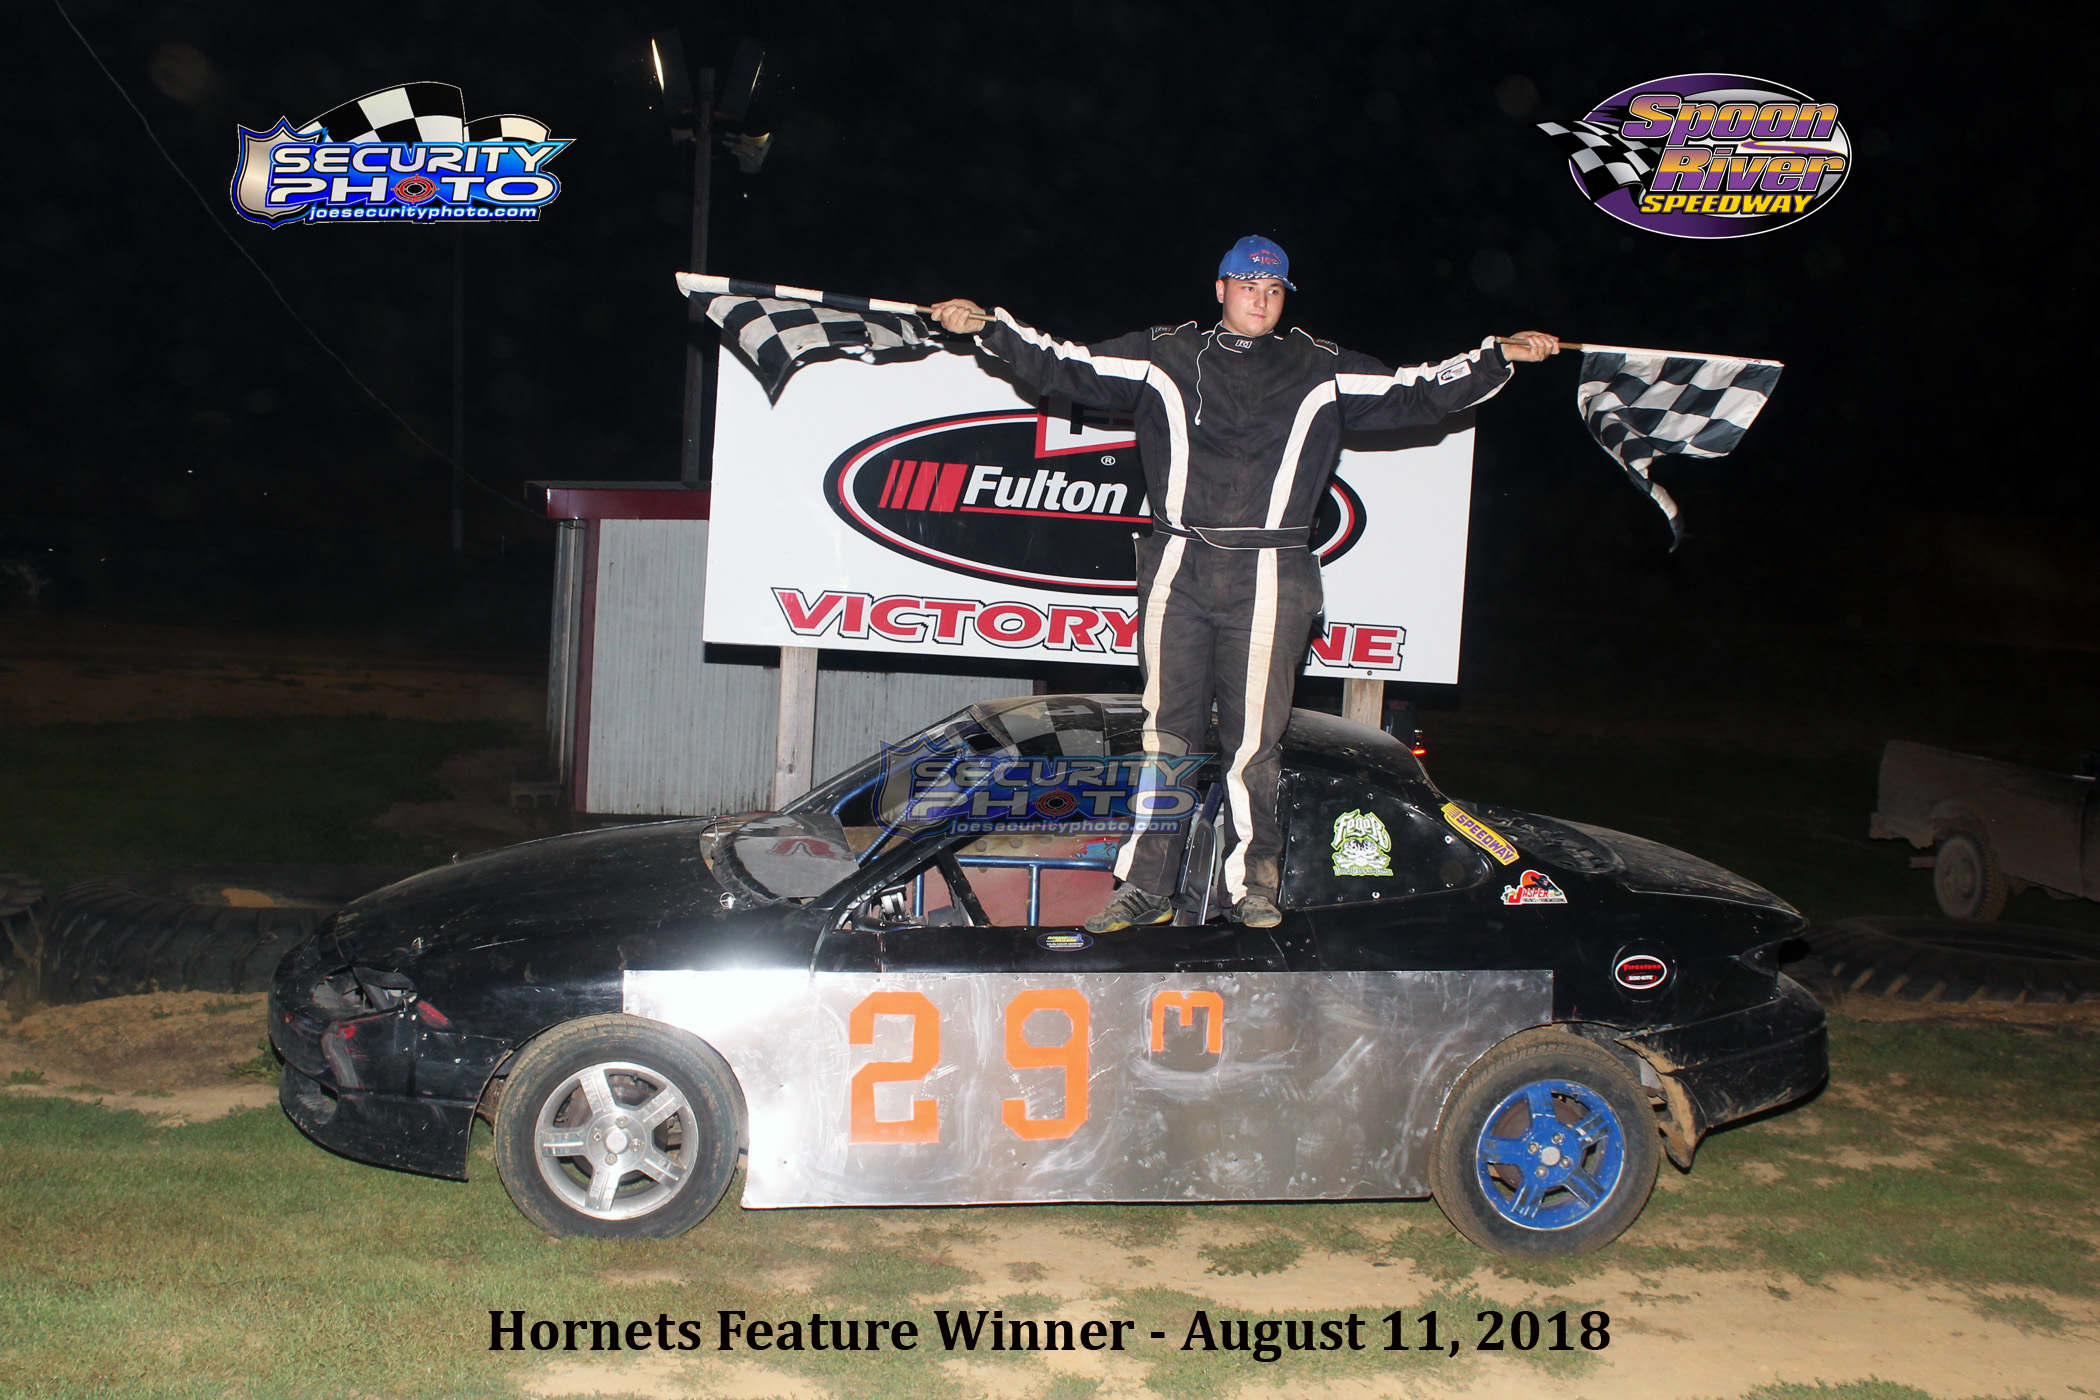 hornets feature winner1944fb